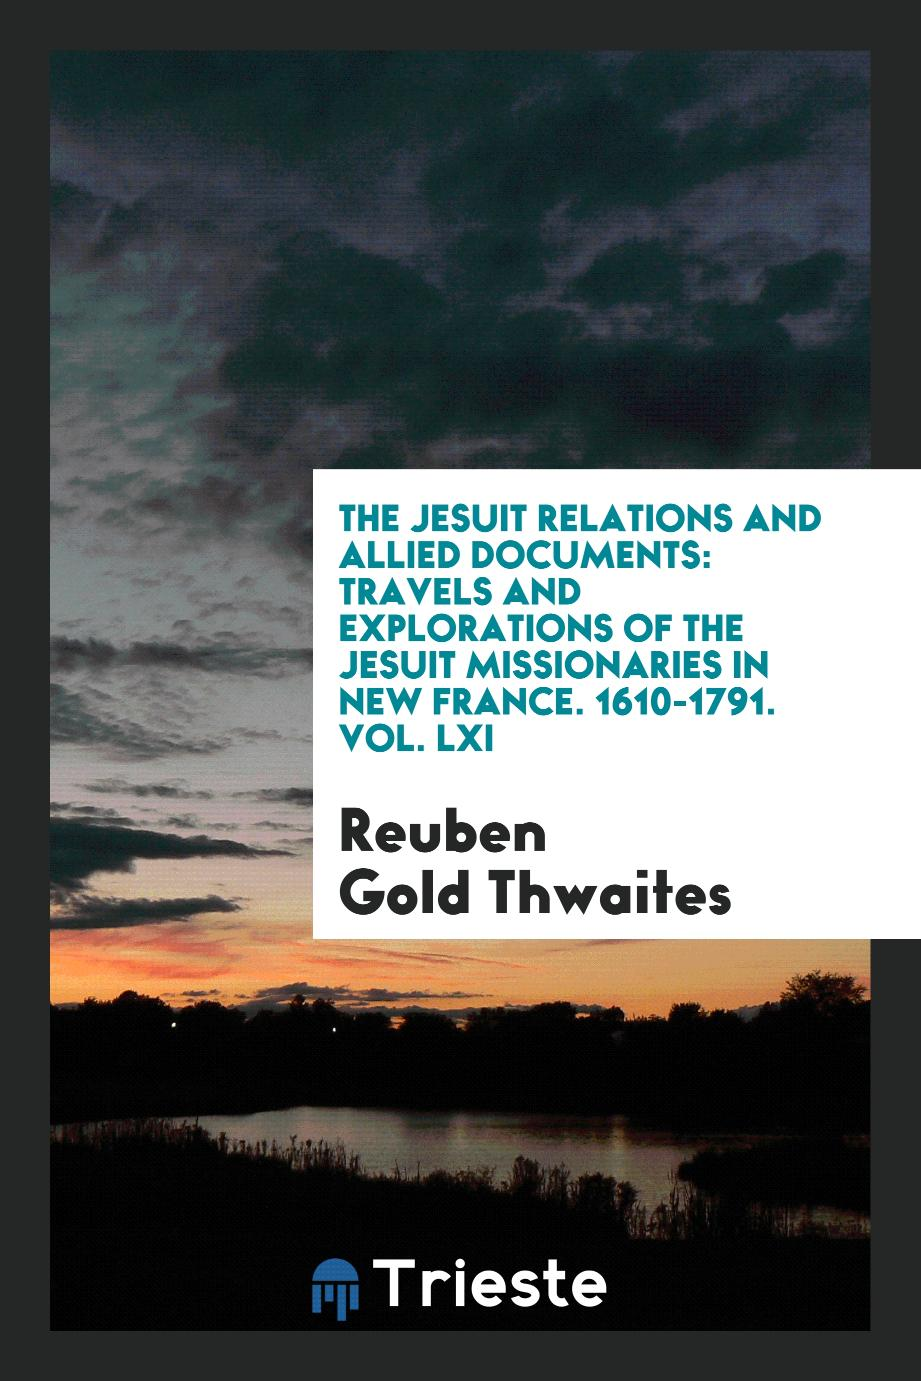 The Jesuit Relations and Allied Documents: Travels and Explorations of the Jesuit Missionaries in New France. 1610-1791. Vol. LXI